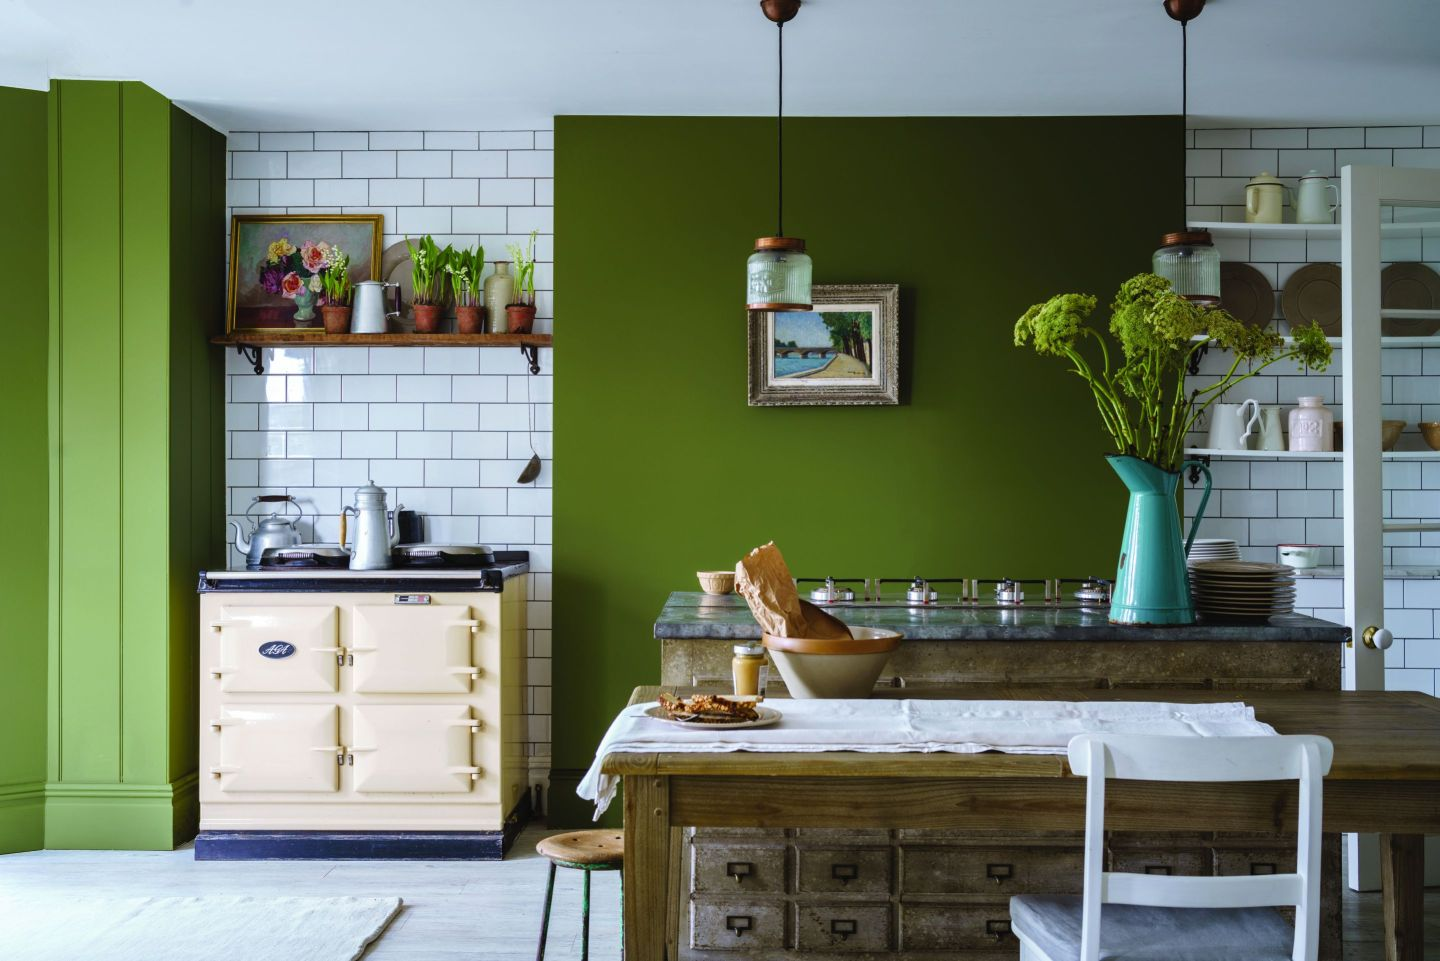 FarrowBall_2604337_BanchaNo298.jpg-1440x961 Paint Inspiration: 20 Colorful Rooms We Love